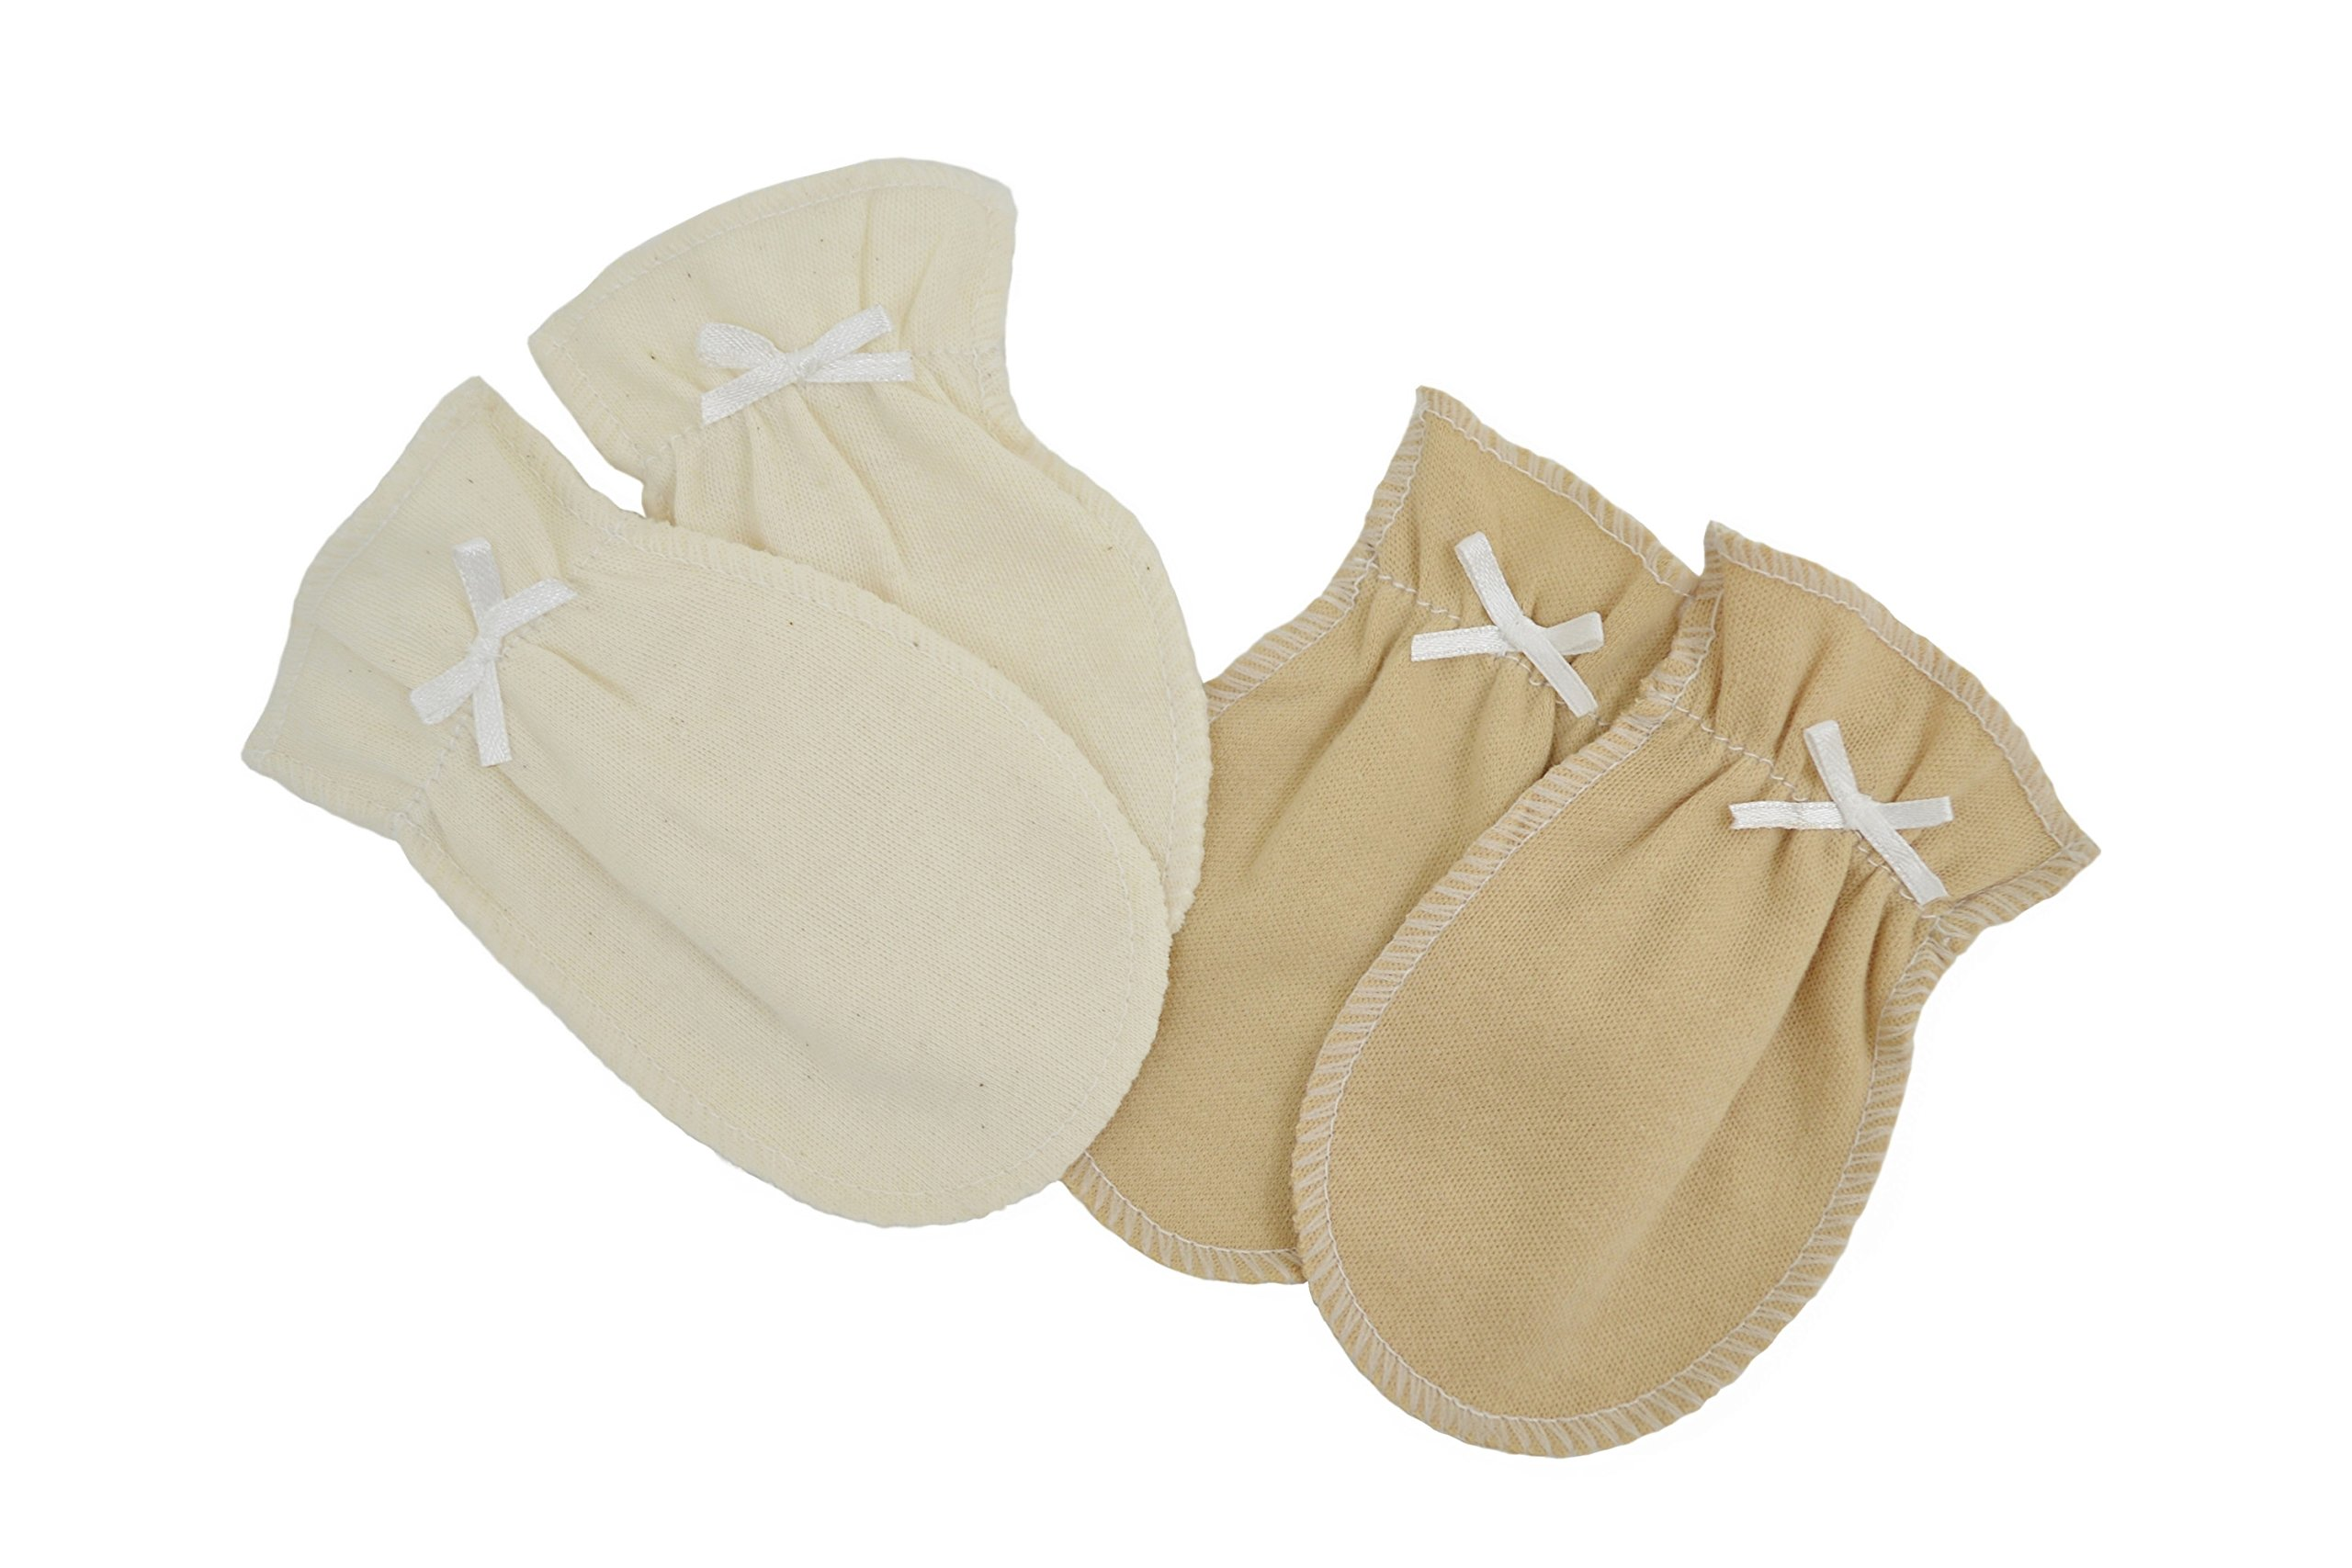 TL Care Newborn Mittens Made with Organic Cotton - 2 Pairs